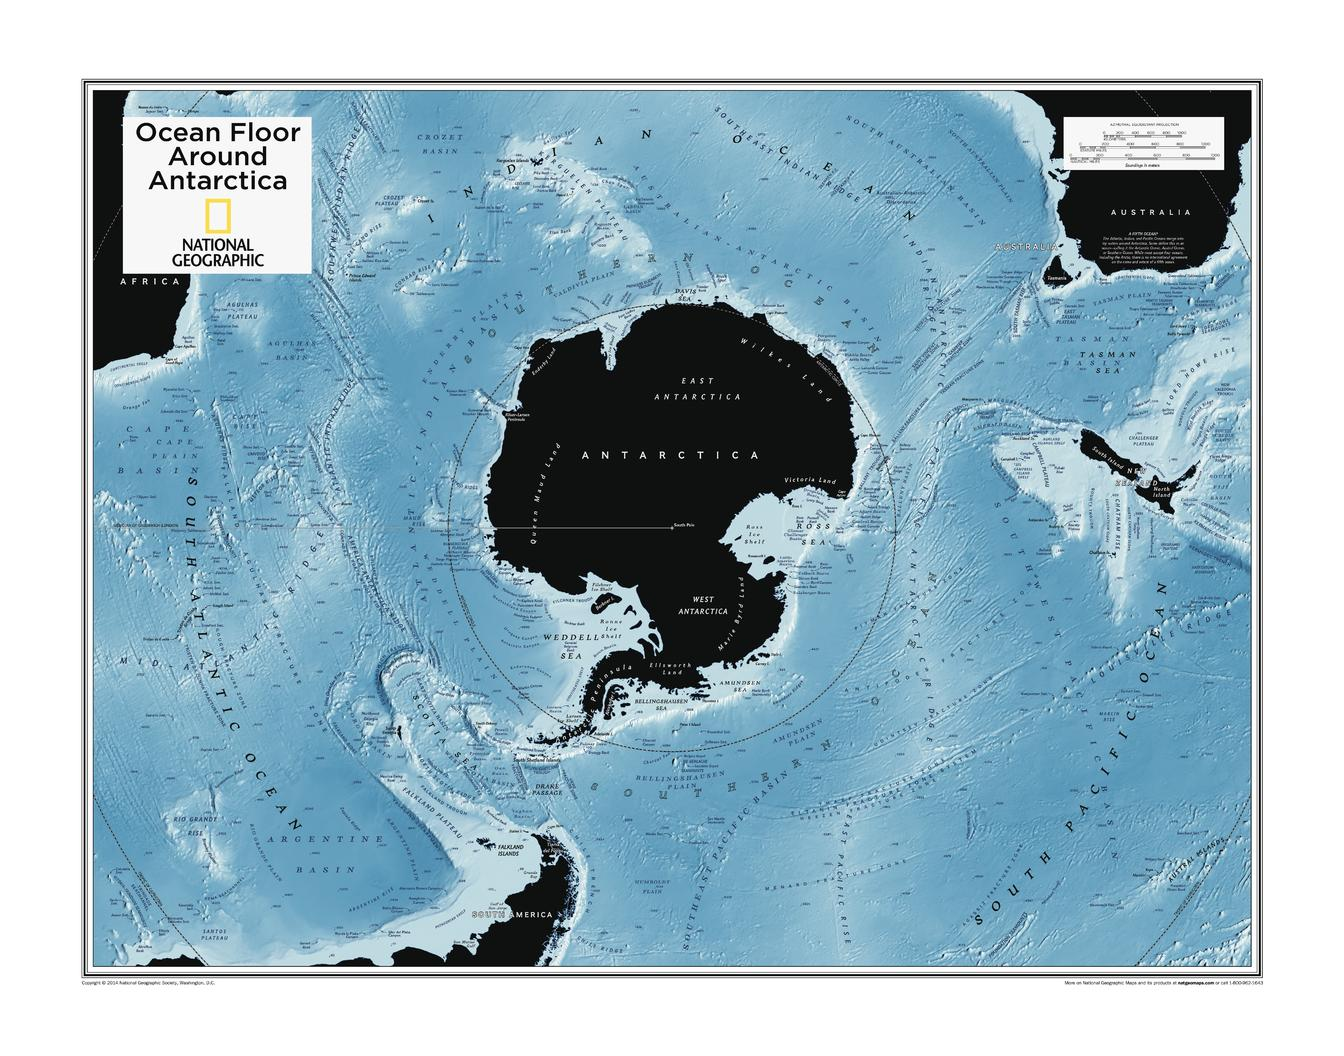 Ocean Floor around Antarctica